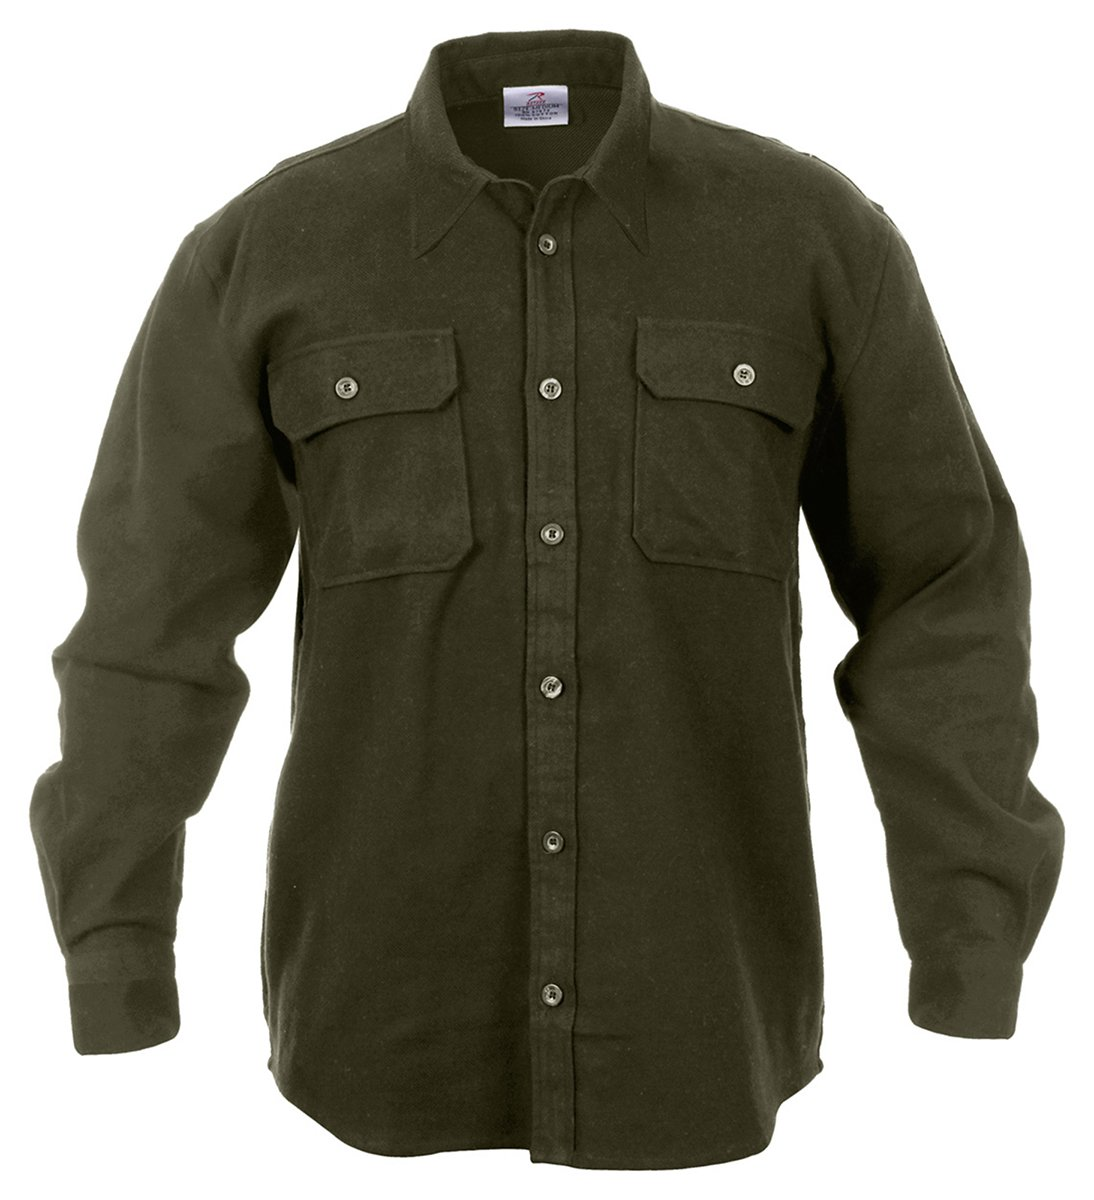 Victorian Men's Shirts- Wingtip, Gambler, Bib, Collarless Rothco Heavy Weight Flannel Shirt $43.19 AT vintagedancer.com